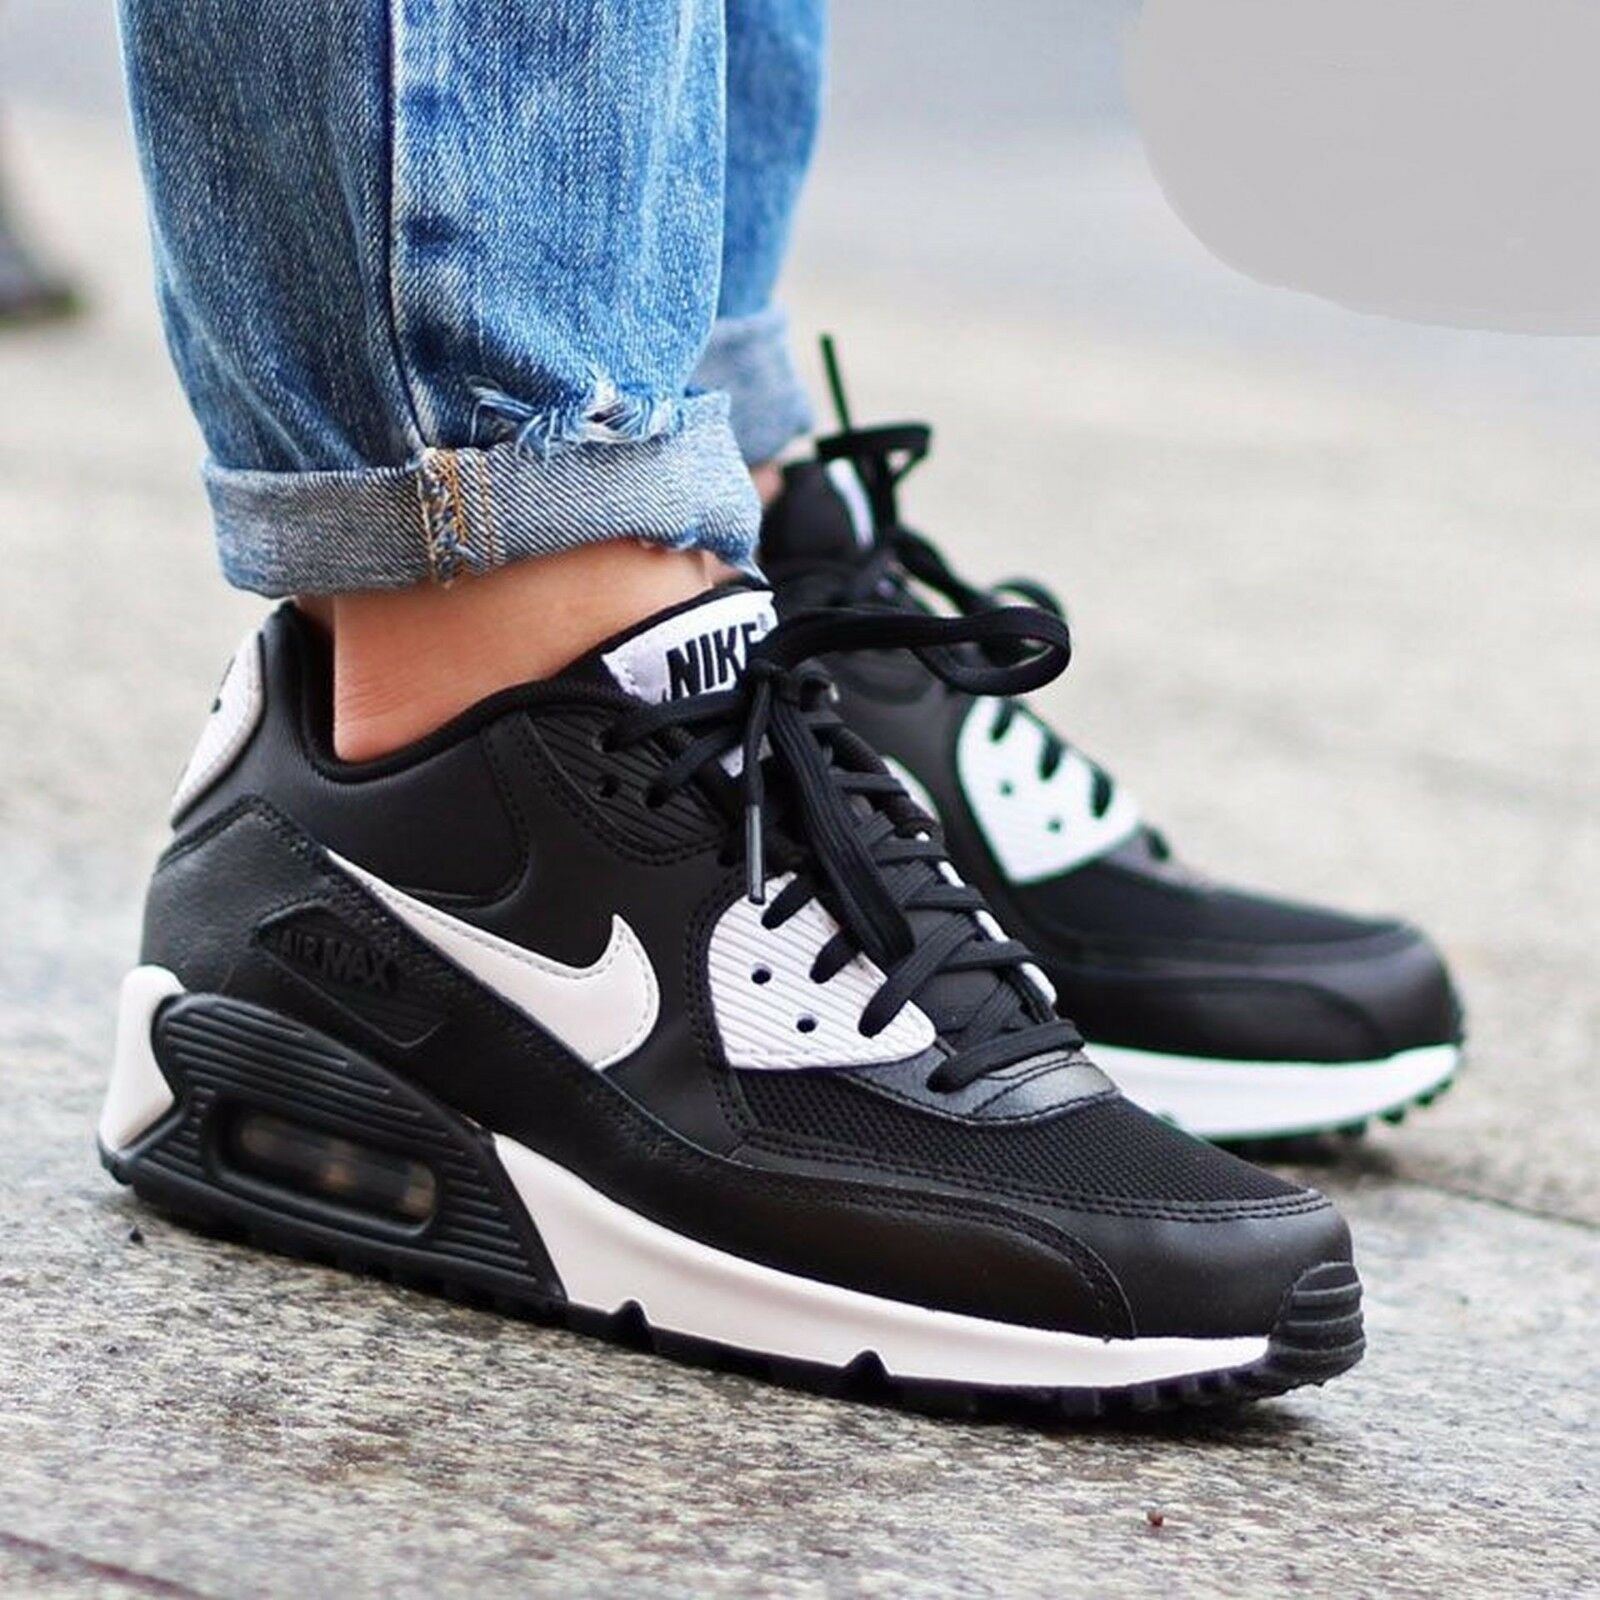 Nike Air Max 90 Essential Black/White-Metallic Silver 616730-023 Wmn Sz 6.5